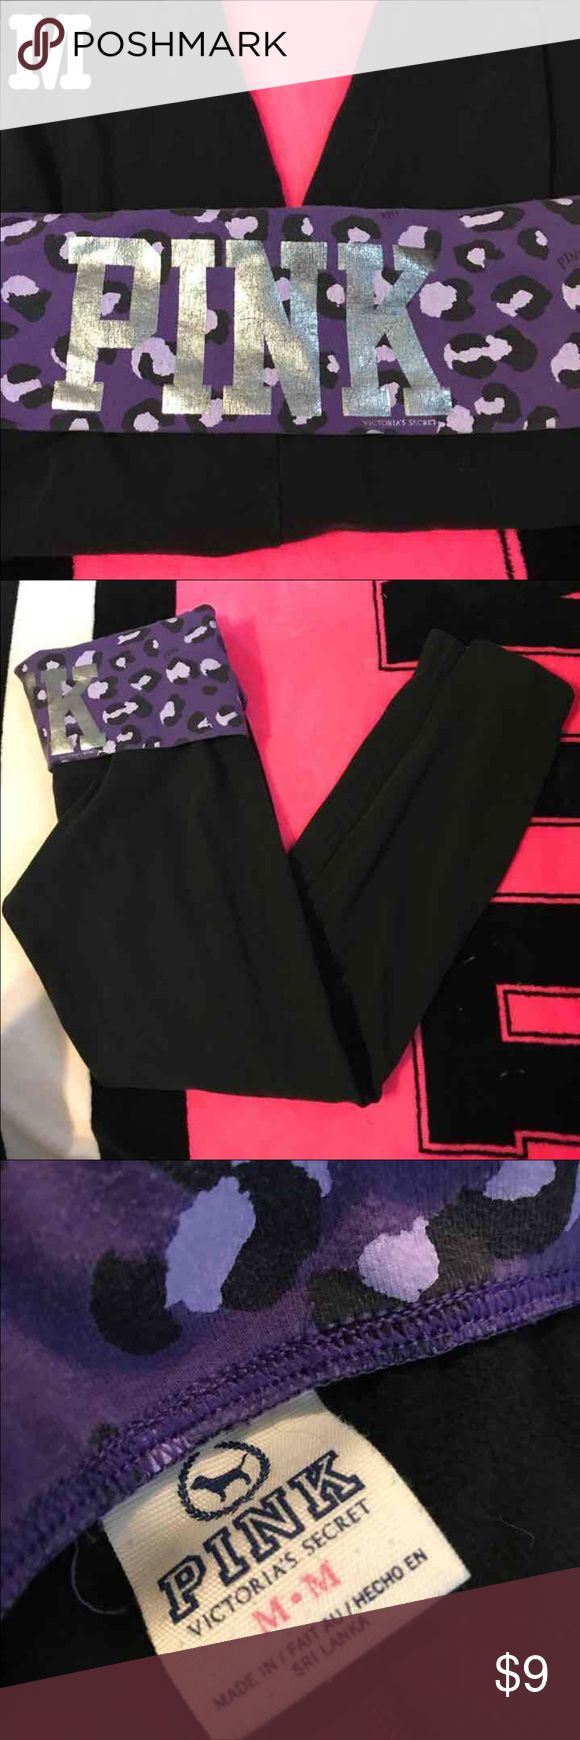 (M) VS PINK Yoga Pant (M) Victoria's Secret PINK Yoga Pant Size: Medium Color: Black, Purple skinny.  I try to make the descriptions as accurate as possible.   Make sure to ask questions you may have of the item BEFORE purchasing!  My prices are chosen by the condition they are in and what I think is a reasonable price that I would purchase if I were to buy them for me.  (650)9.1 PINK Victoria's Secret Pants